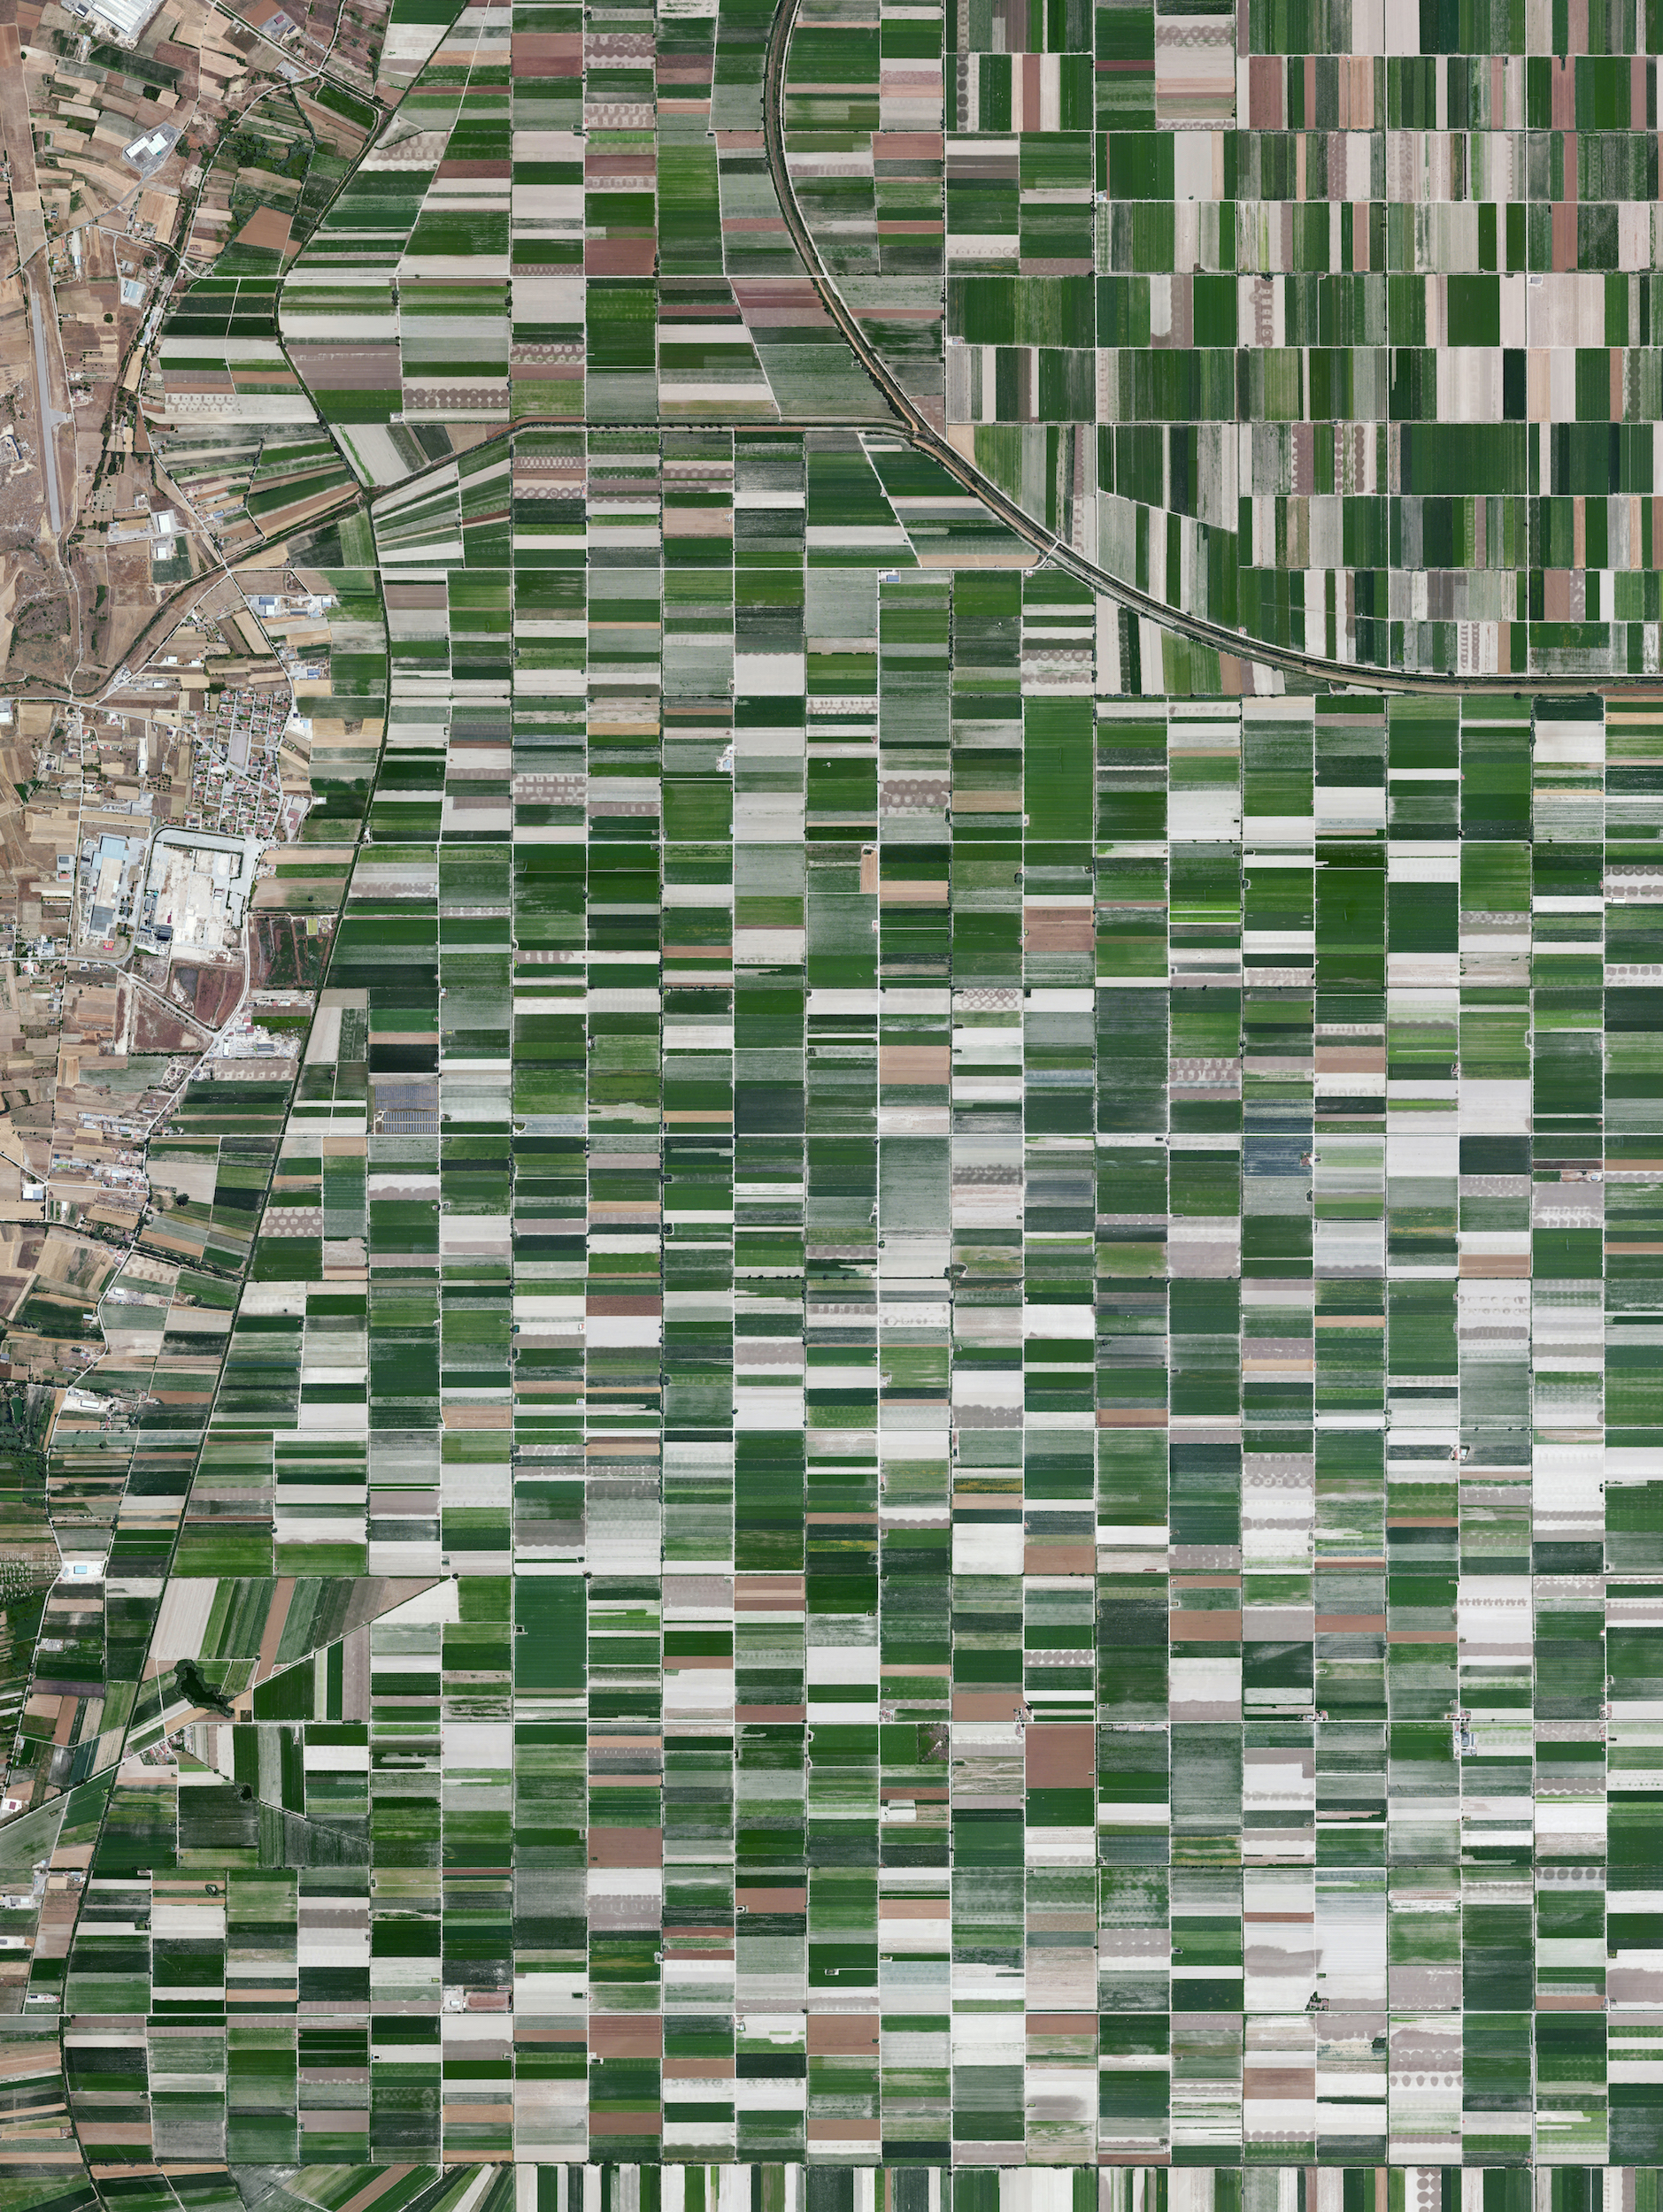 4/13/2016  Plain of Fucino  Abruzzo, Italy  42.0043709, 13.5290608     The plain of Fucino in the Abruzzo region of Italy is commonly recognized for the quality of the vegetables that are grown here - in particular the potatoes, carrots, and radishes. What is now an entire plain filled with farms was once Fucine Lake, the third largest lake in Italy. The lake was drained in 1877 to make agricultural development possible here, an area that is now responsible for roughly 25% of the agricultural production in the region.